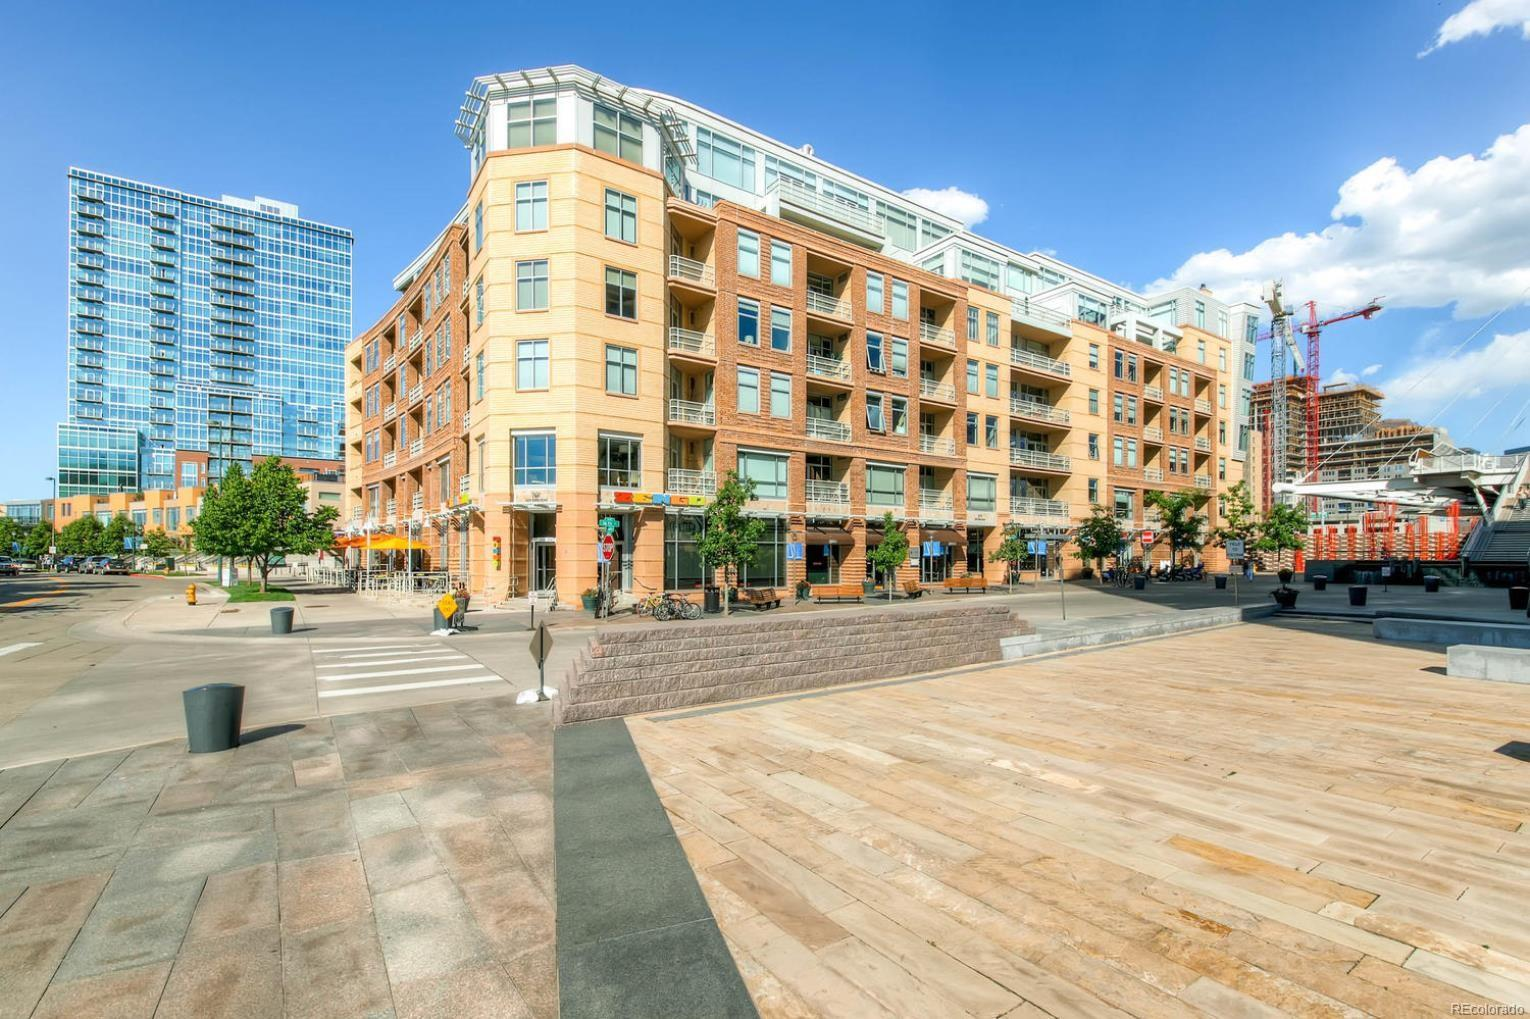 GORGEOUS 2 BED 2 BATH LOFT RIGHT IN THE HEART OF DOWNTOWN!